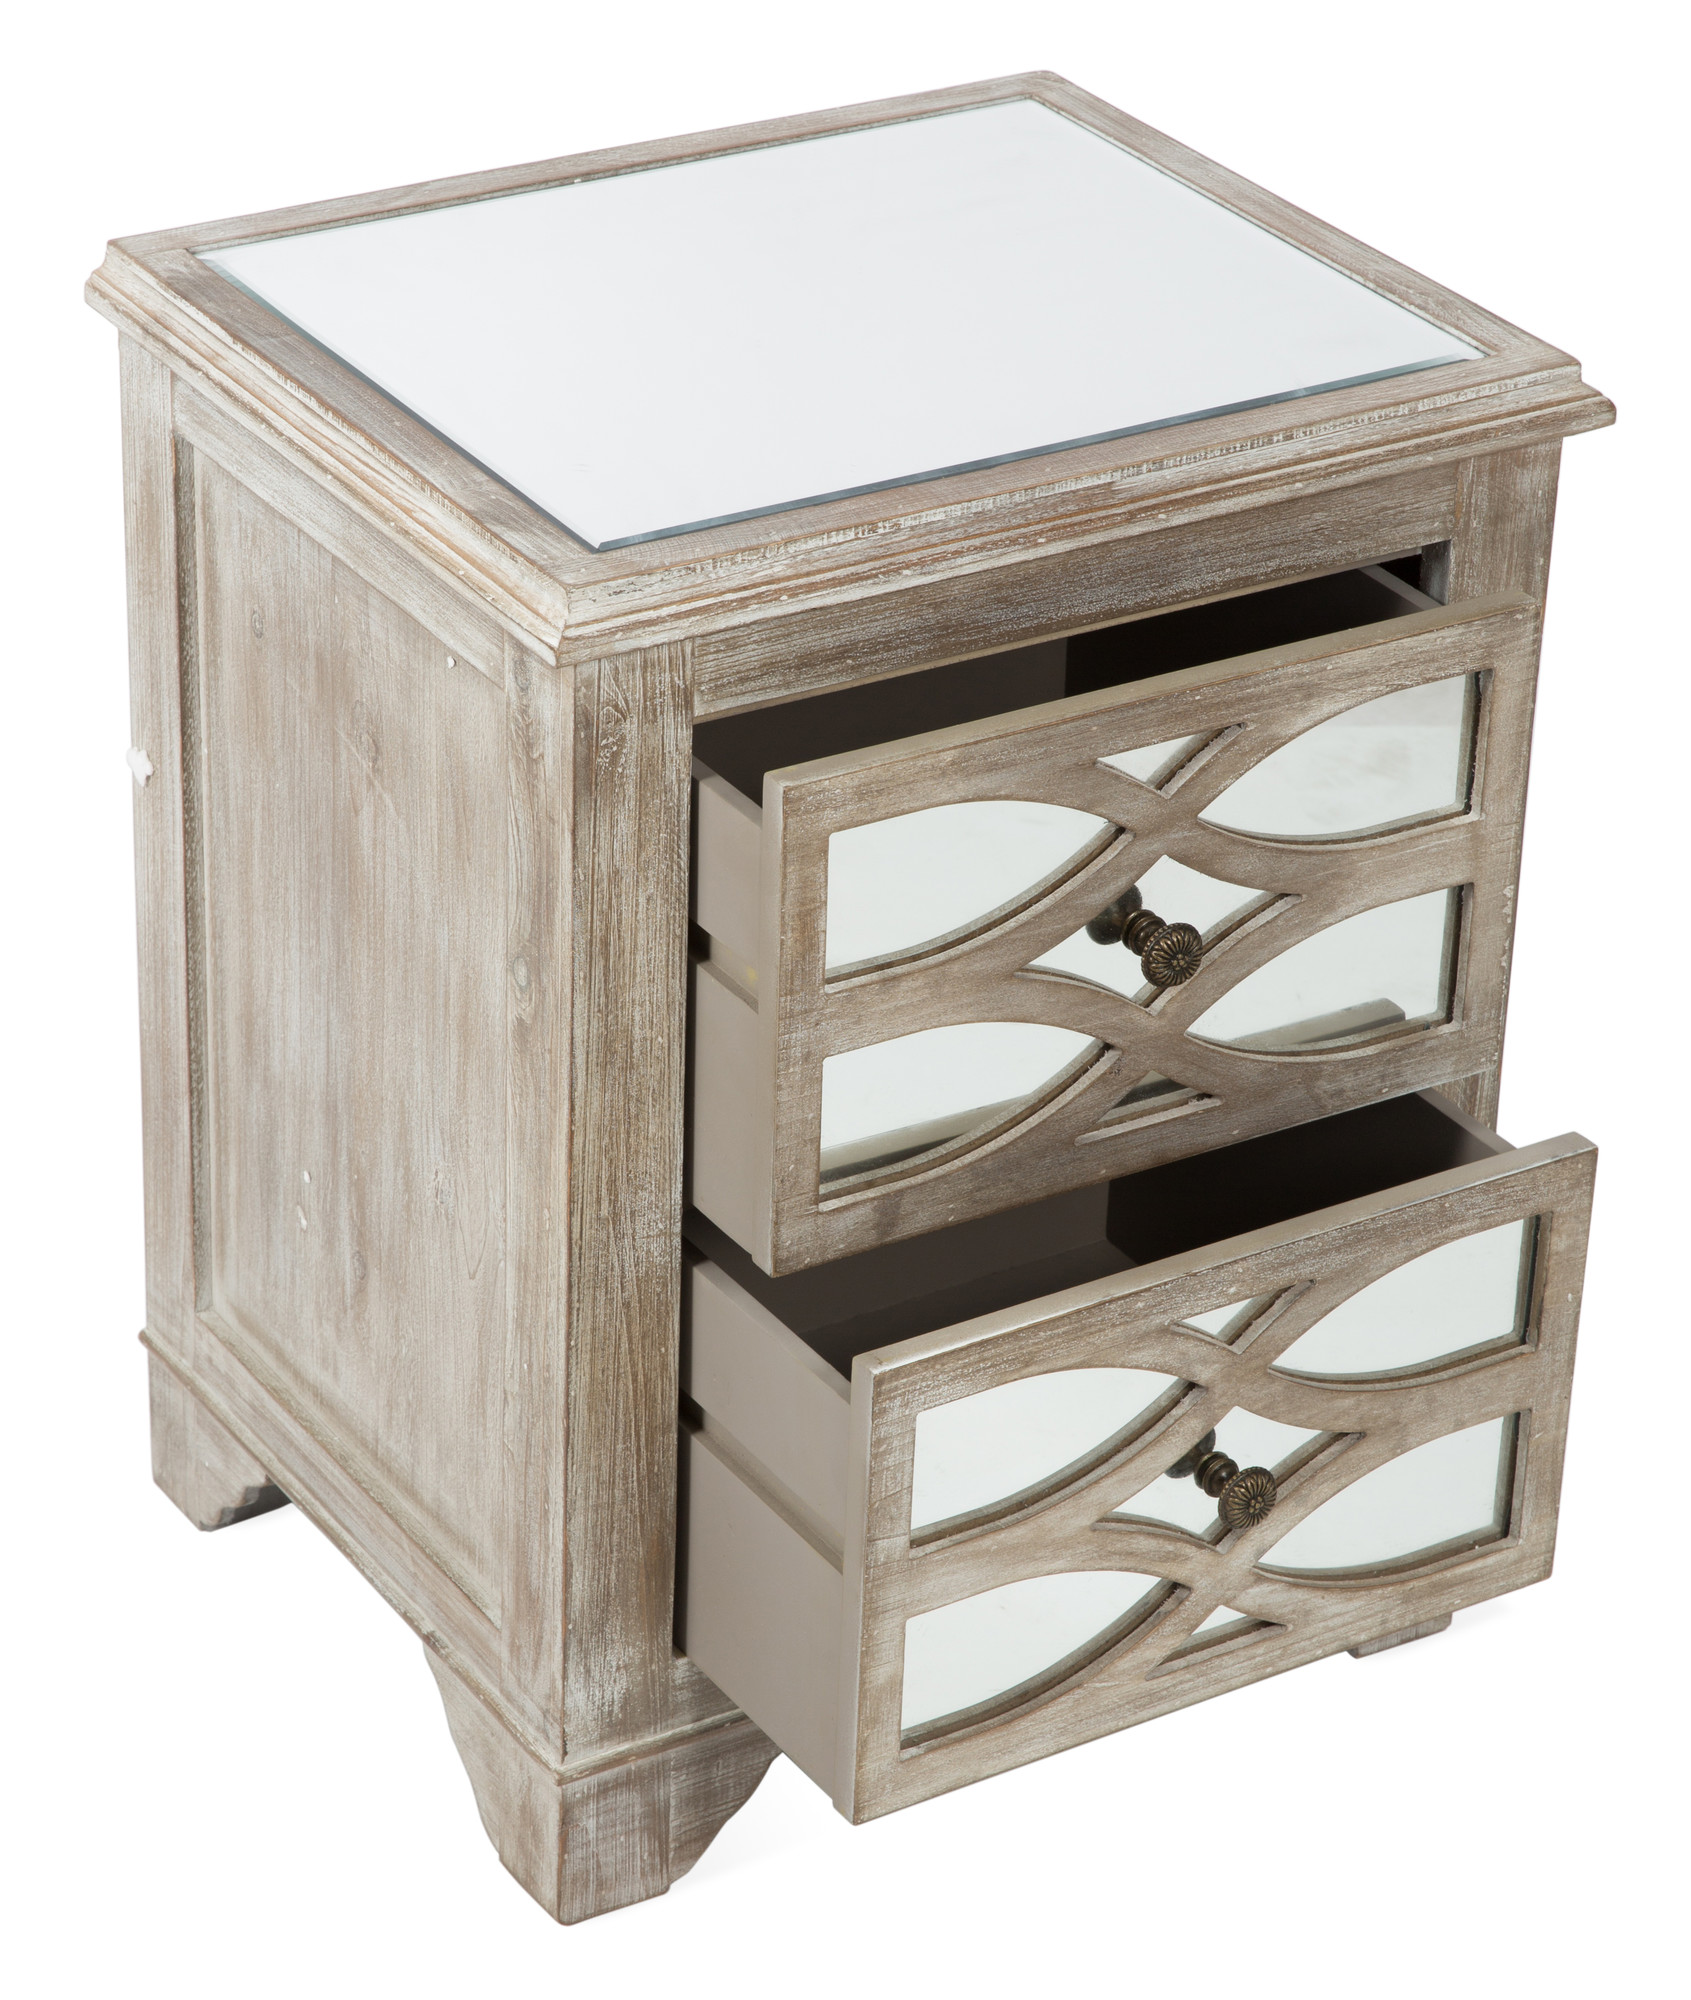 Delightful 2 Draw Wooden Lattice Mirrored Bedside Table FF761111 Design Inspirations